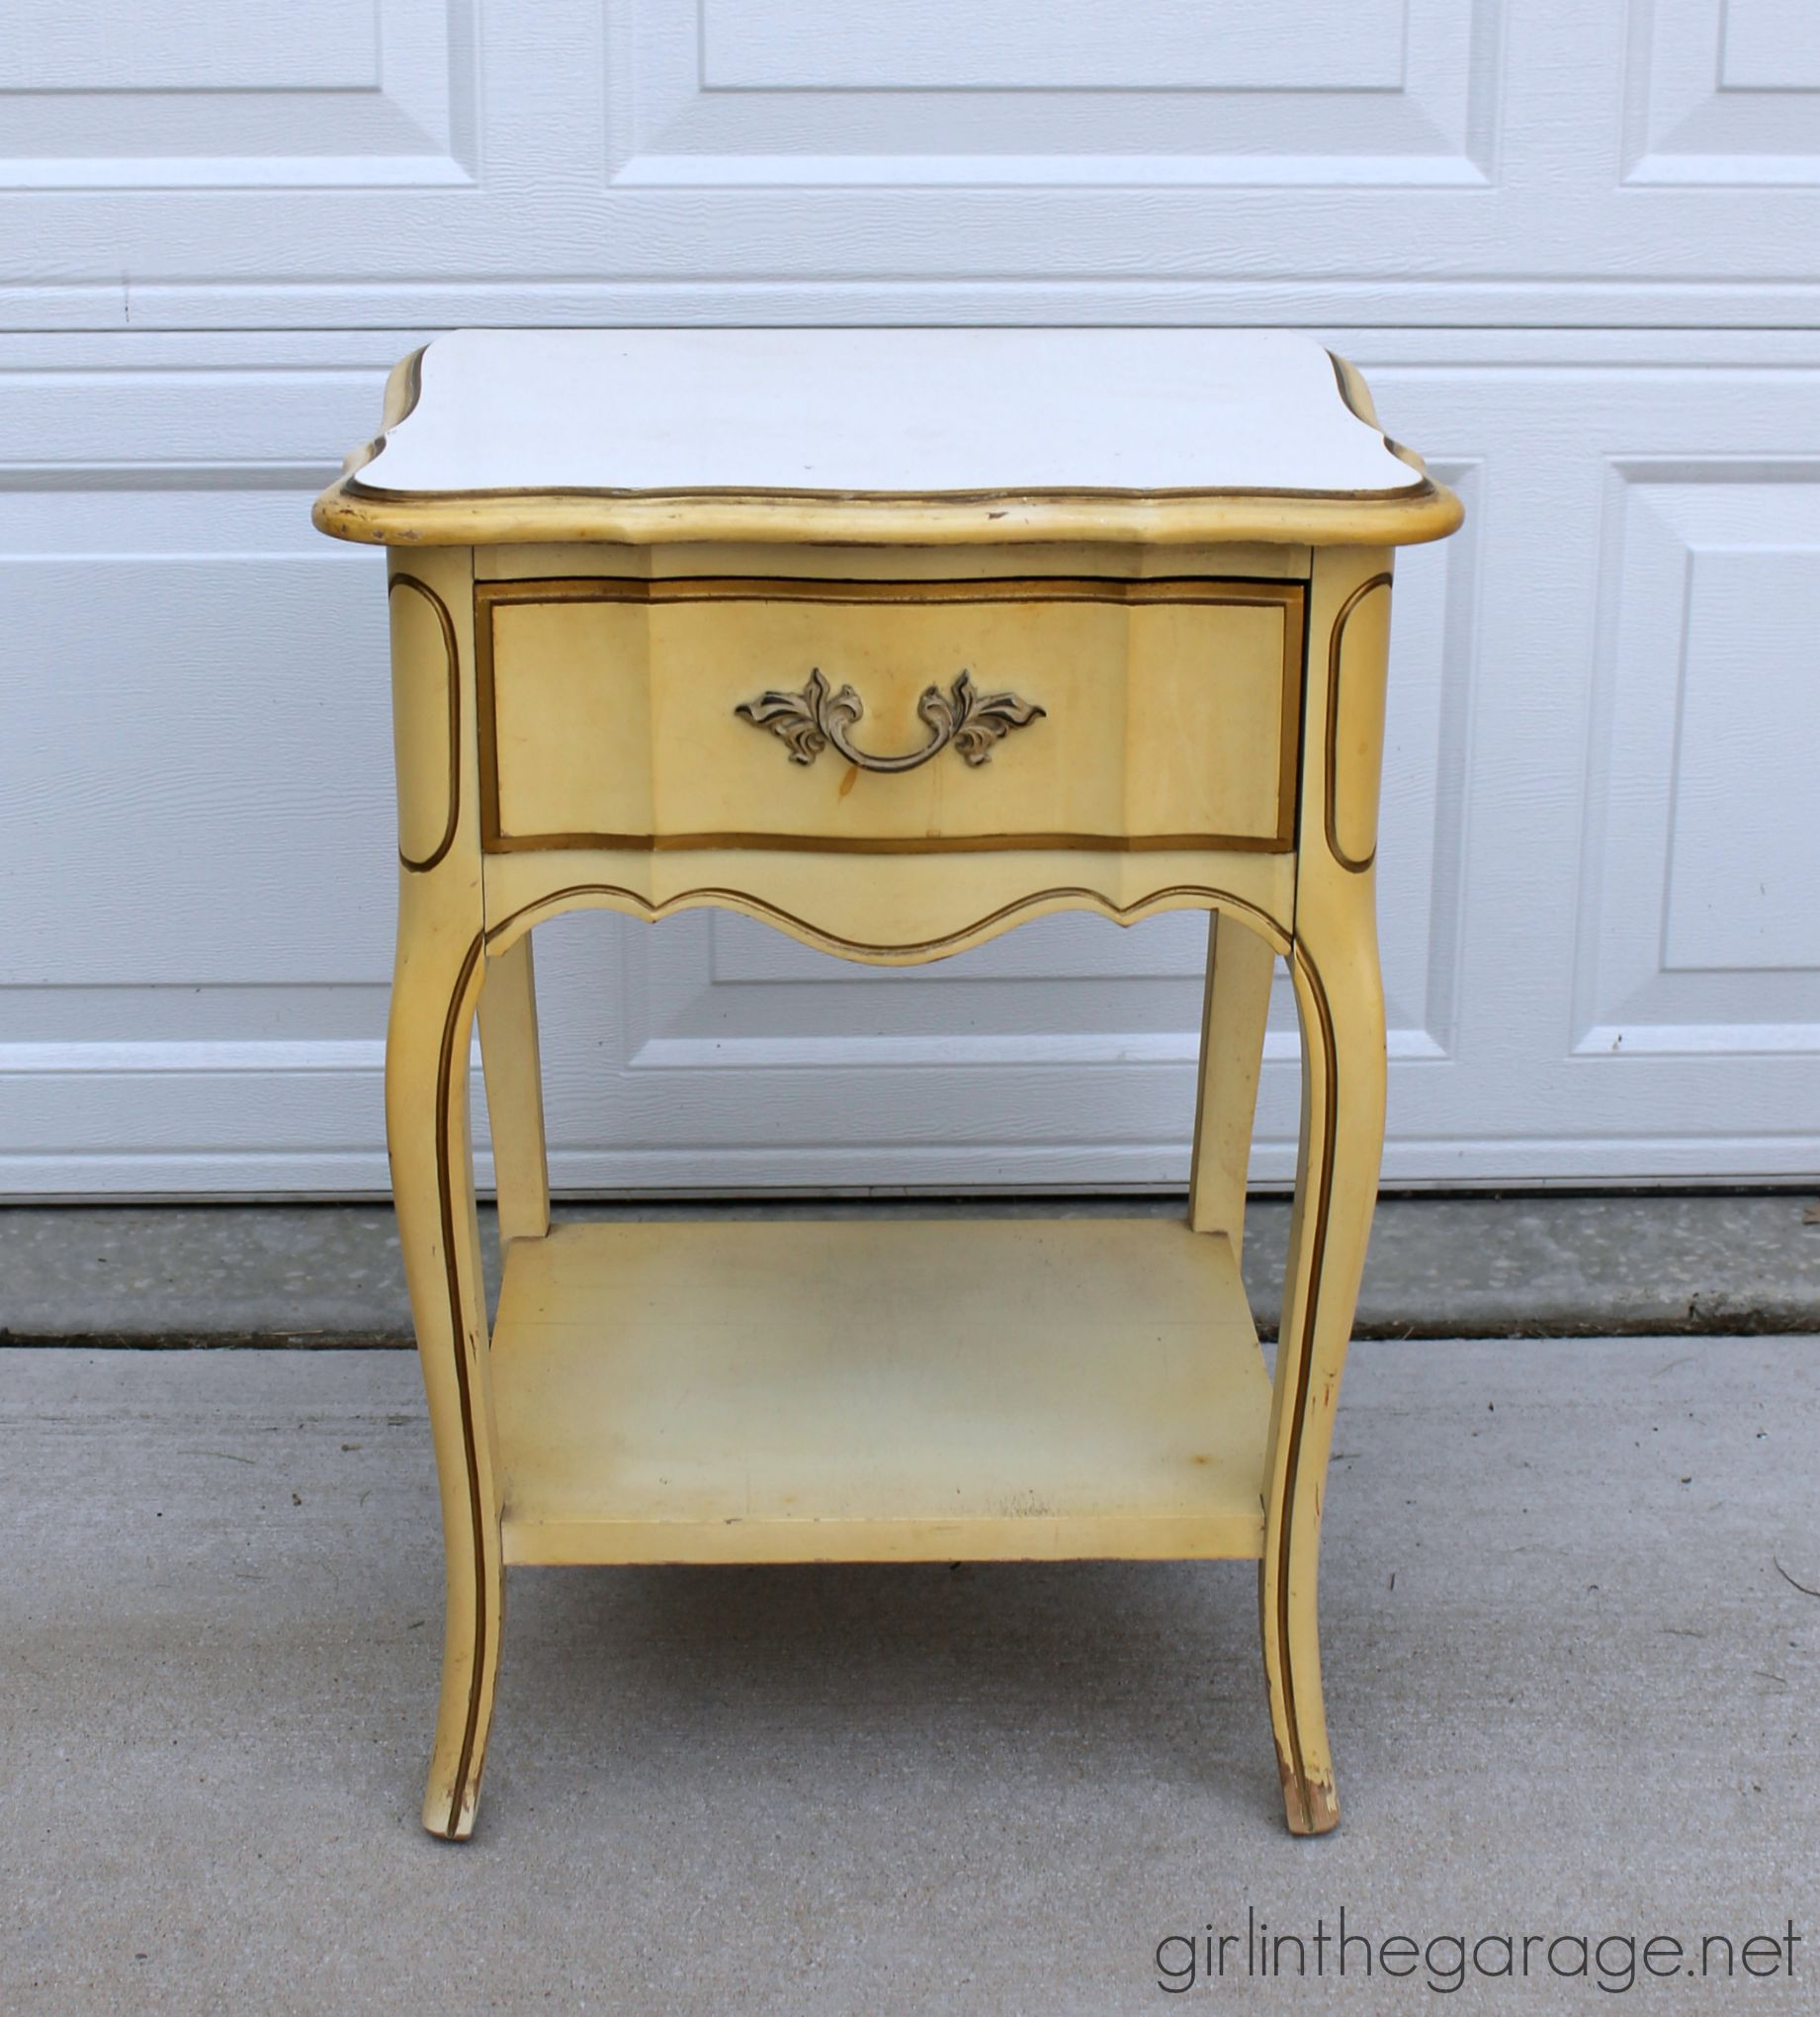 (Before) 70s French Provincial nightstand makeover to stunning metallic beauty - by Girl in the Garage